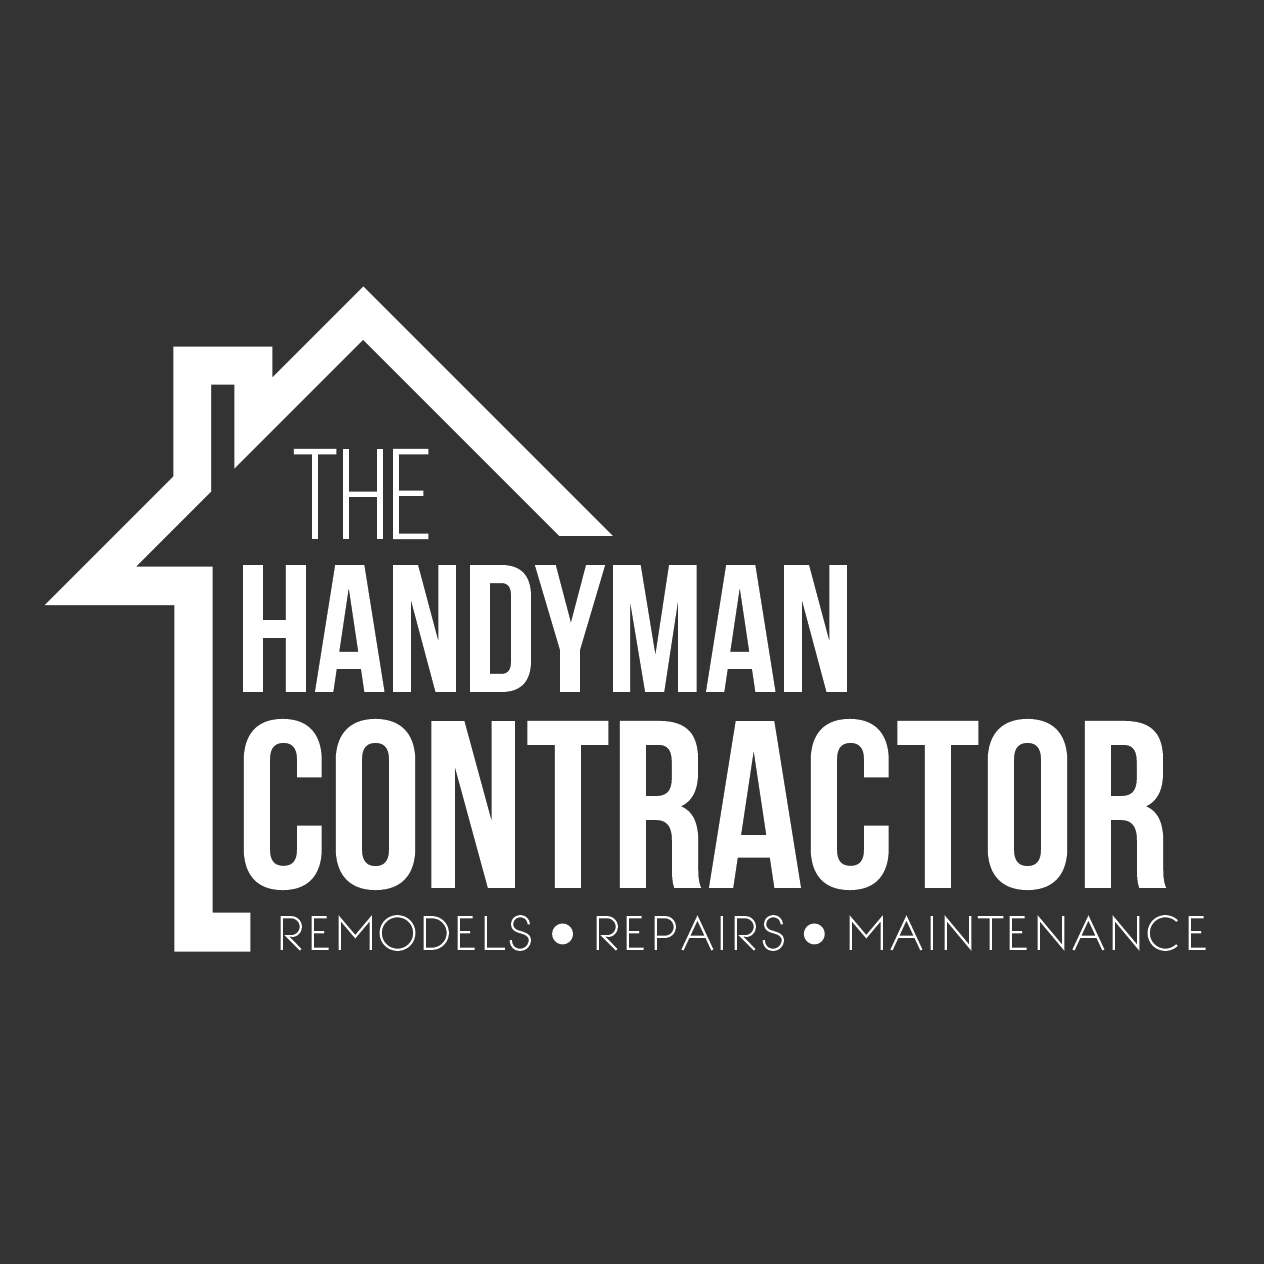 Logo design for home improvement company logo for House construction companies